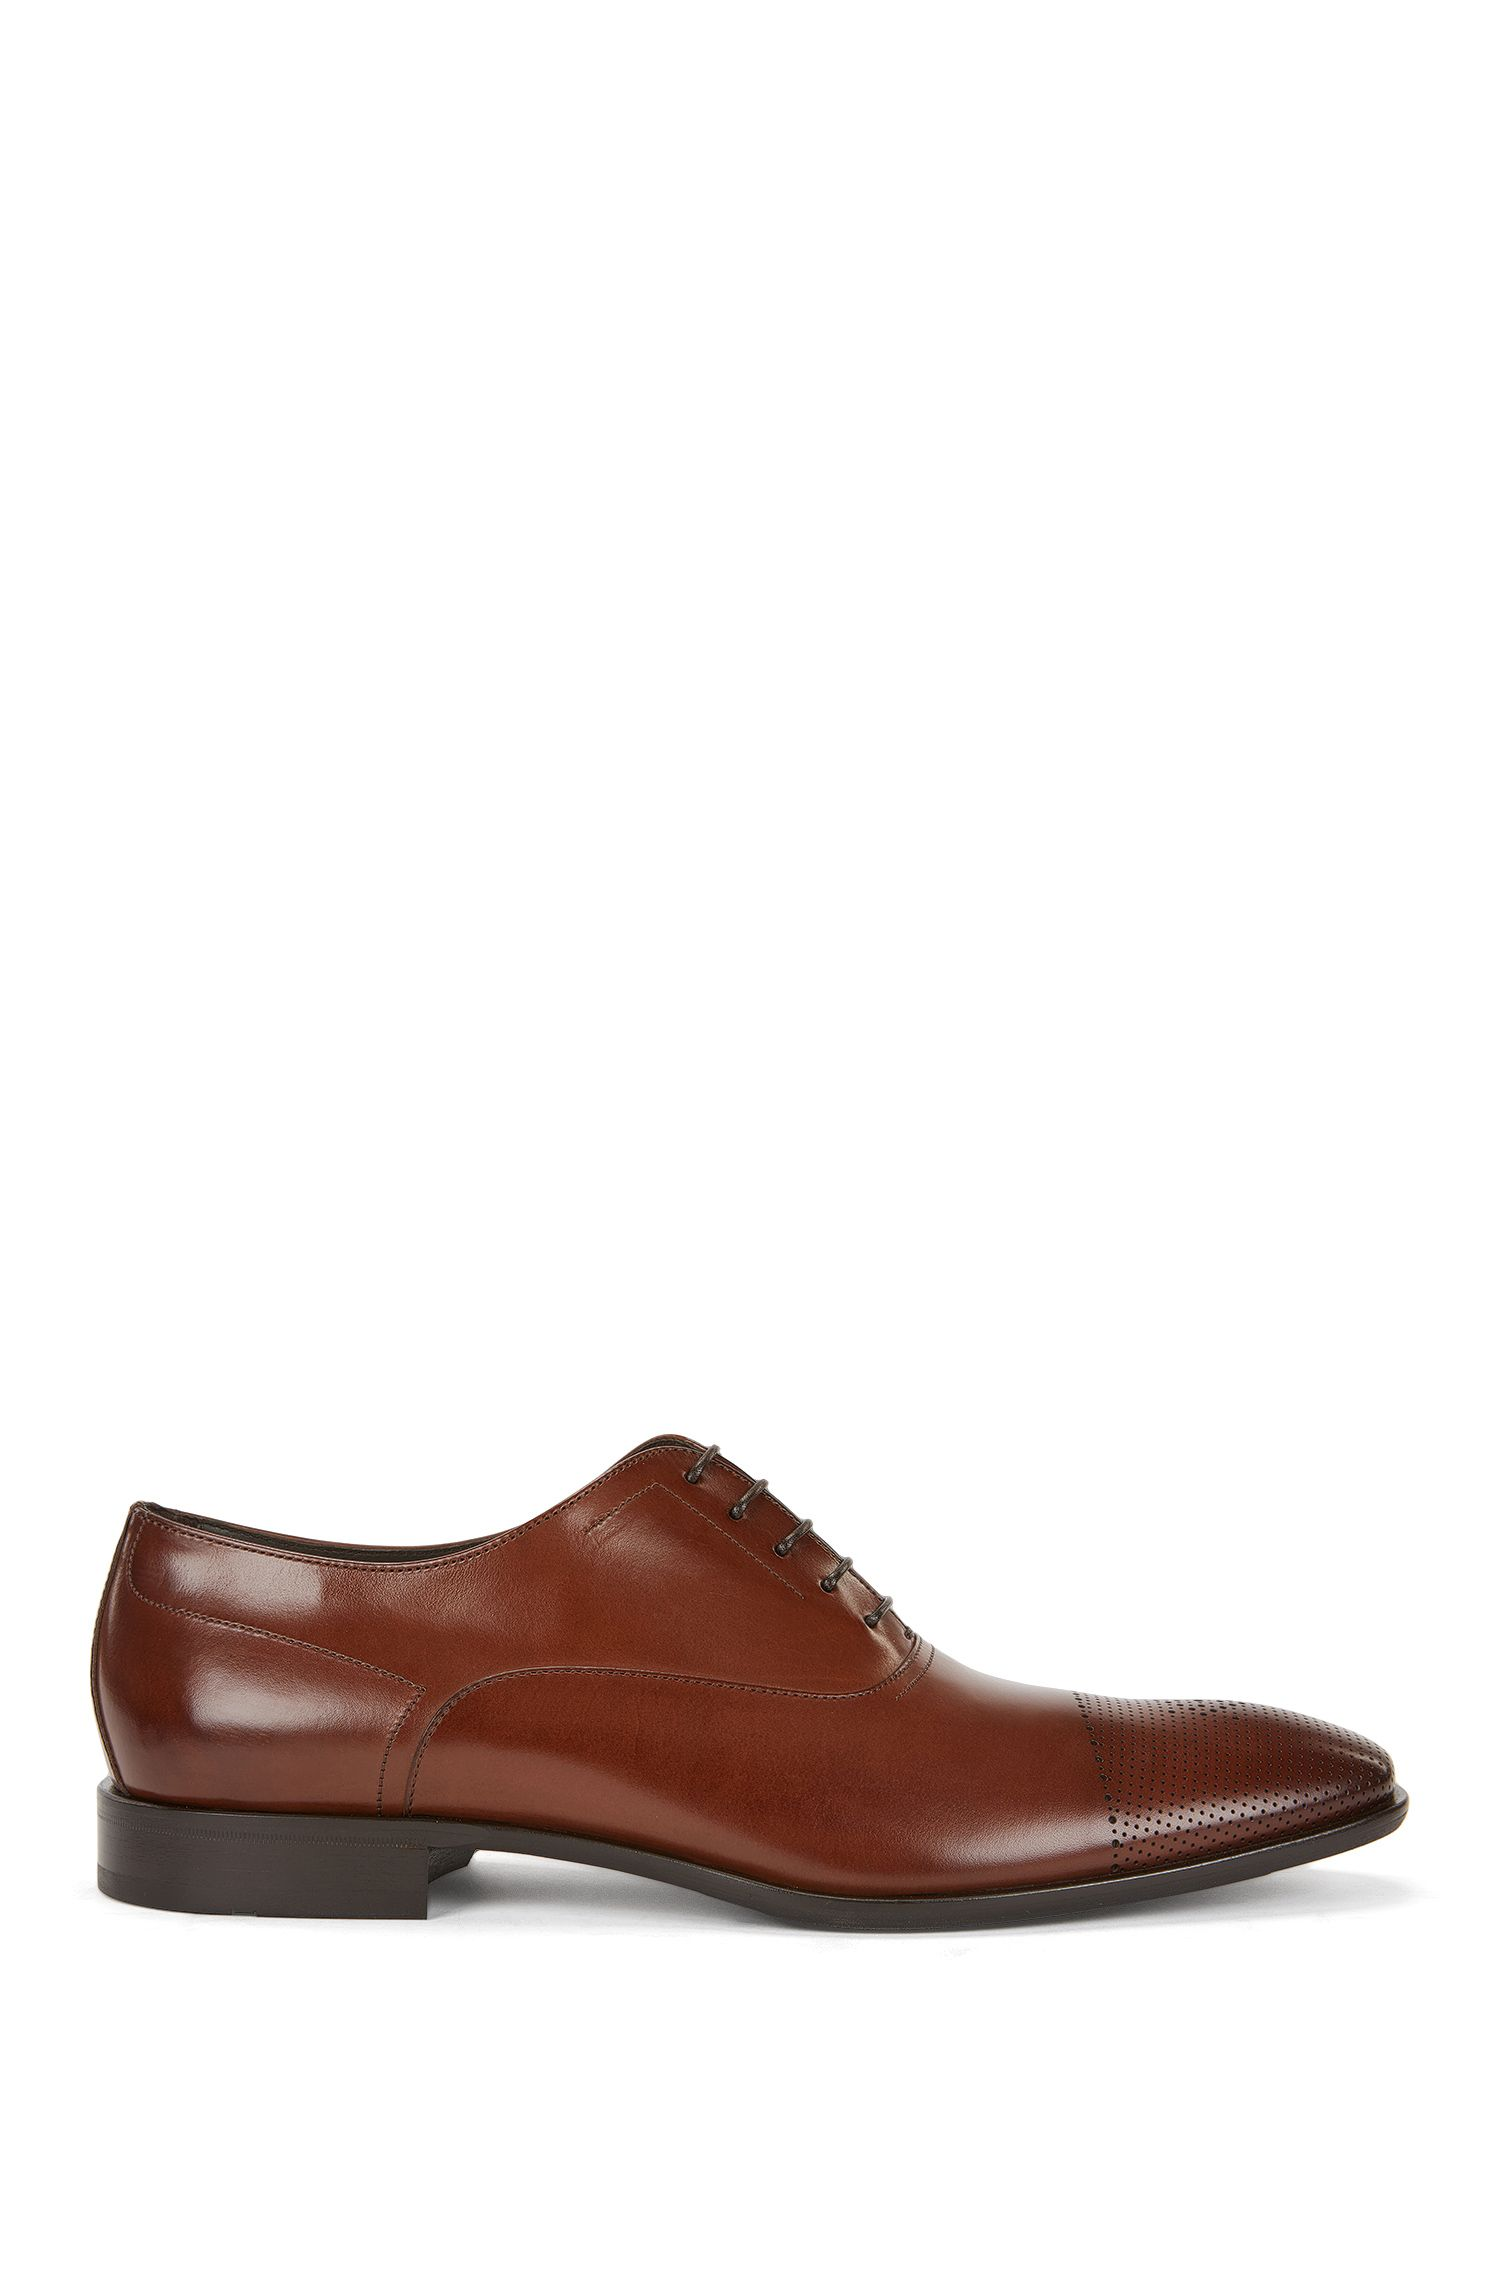 Leather Oxford shoes with laser-cut toecap